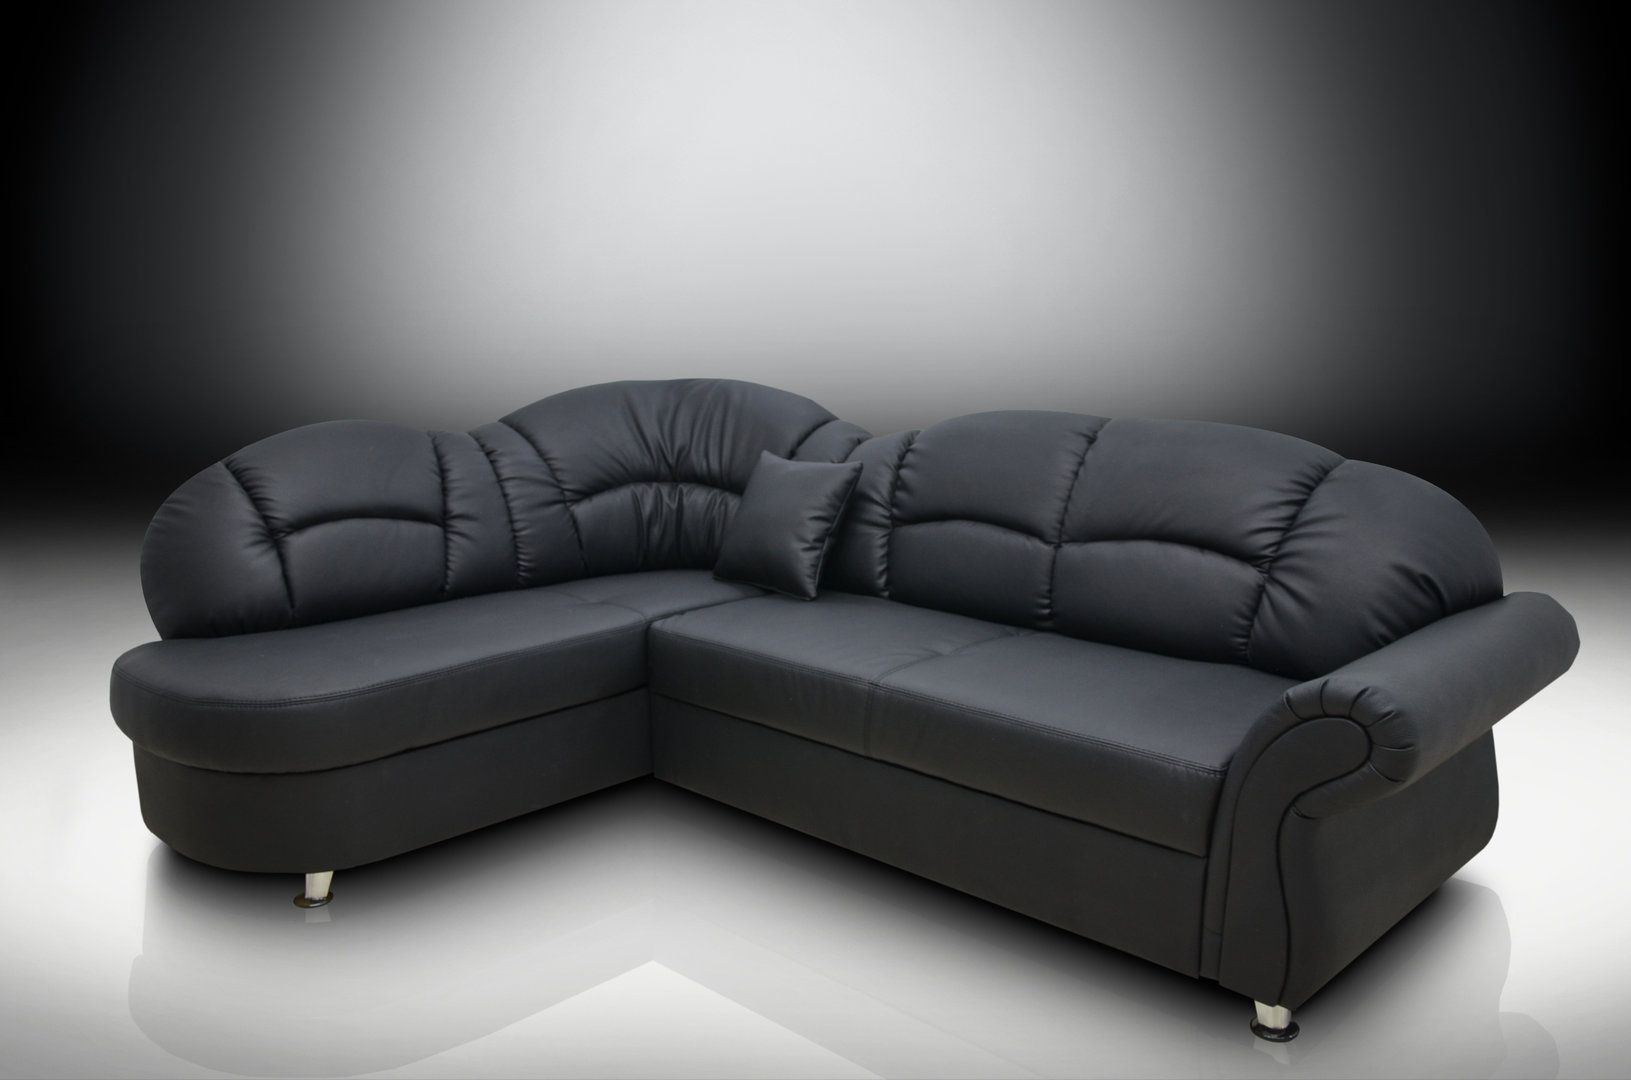 Black Corner Sofas A Perfect Mix Of Luxury Comfort Style For 2018 Homes Leather Corner Sofa Corner Sofa Bed Sofa Bed